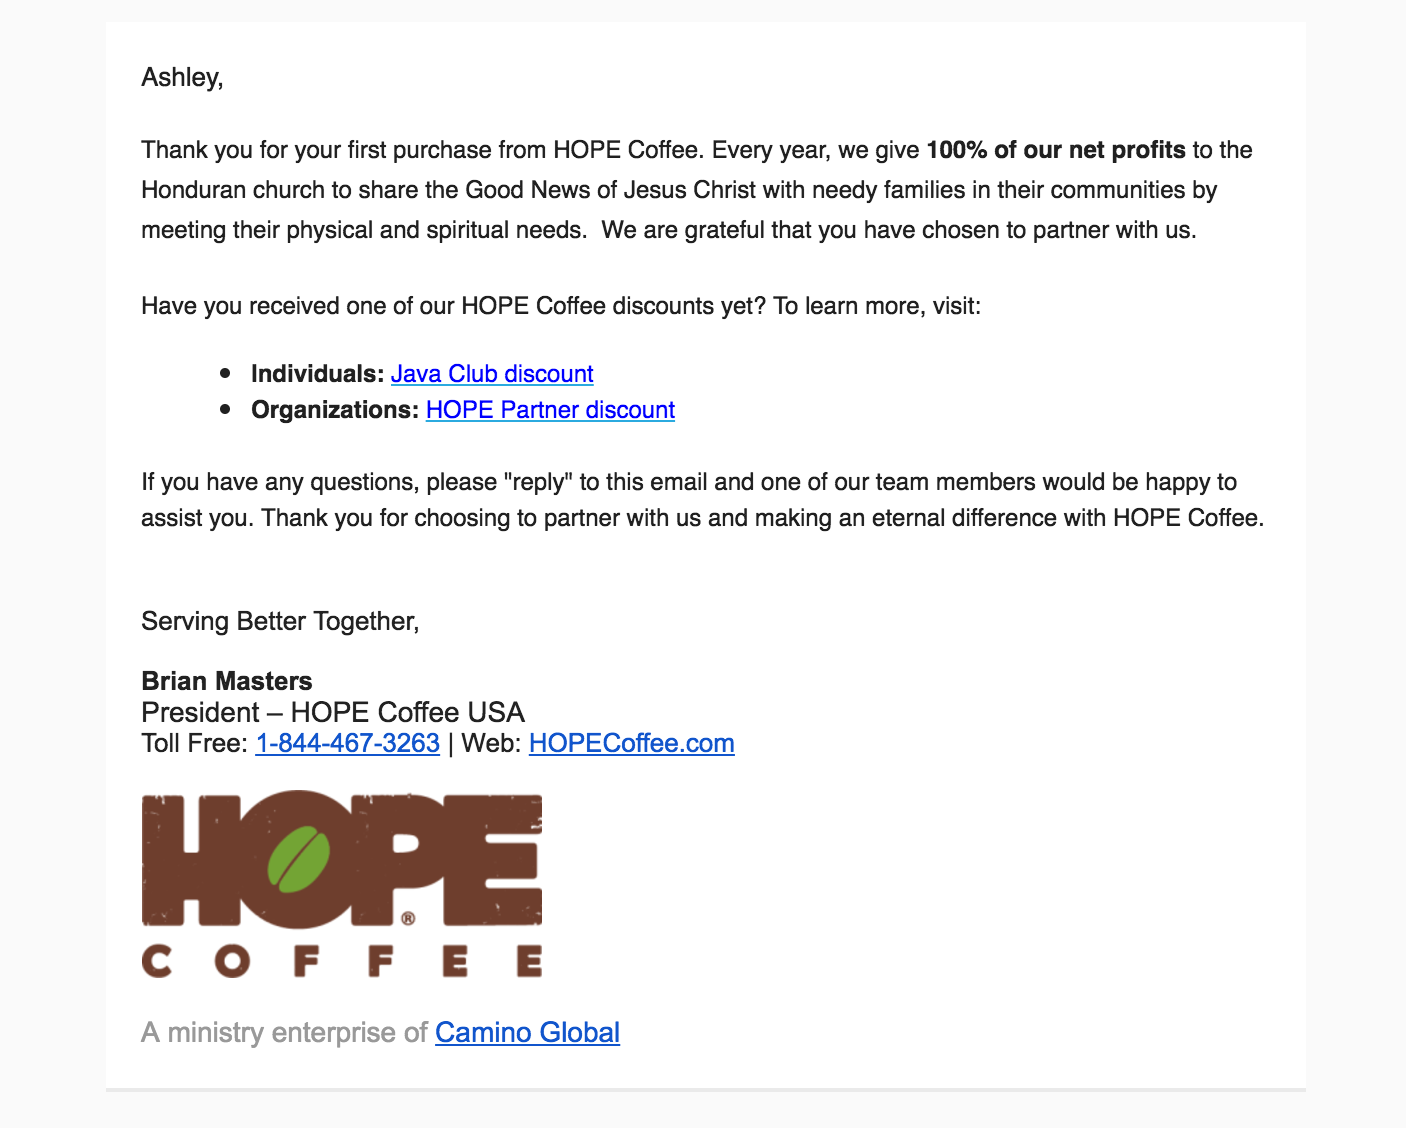 Hoop Koffie e-mail marketing